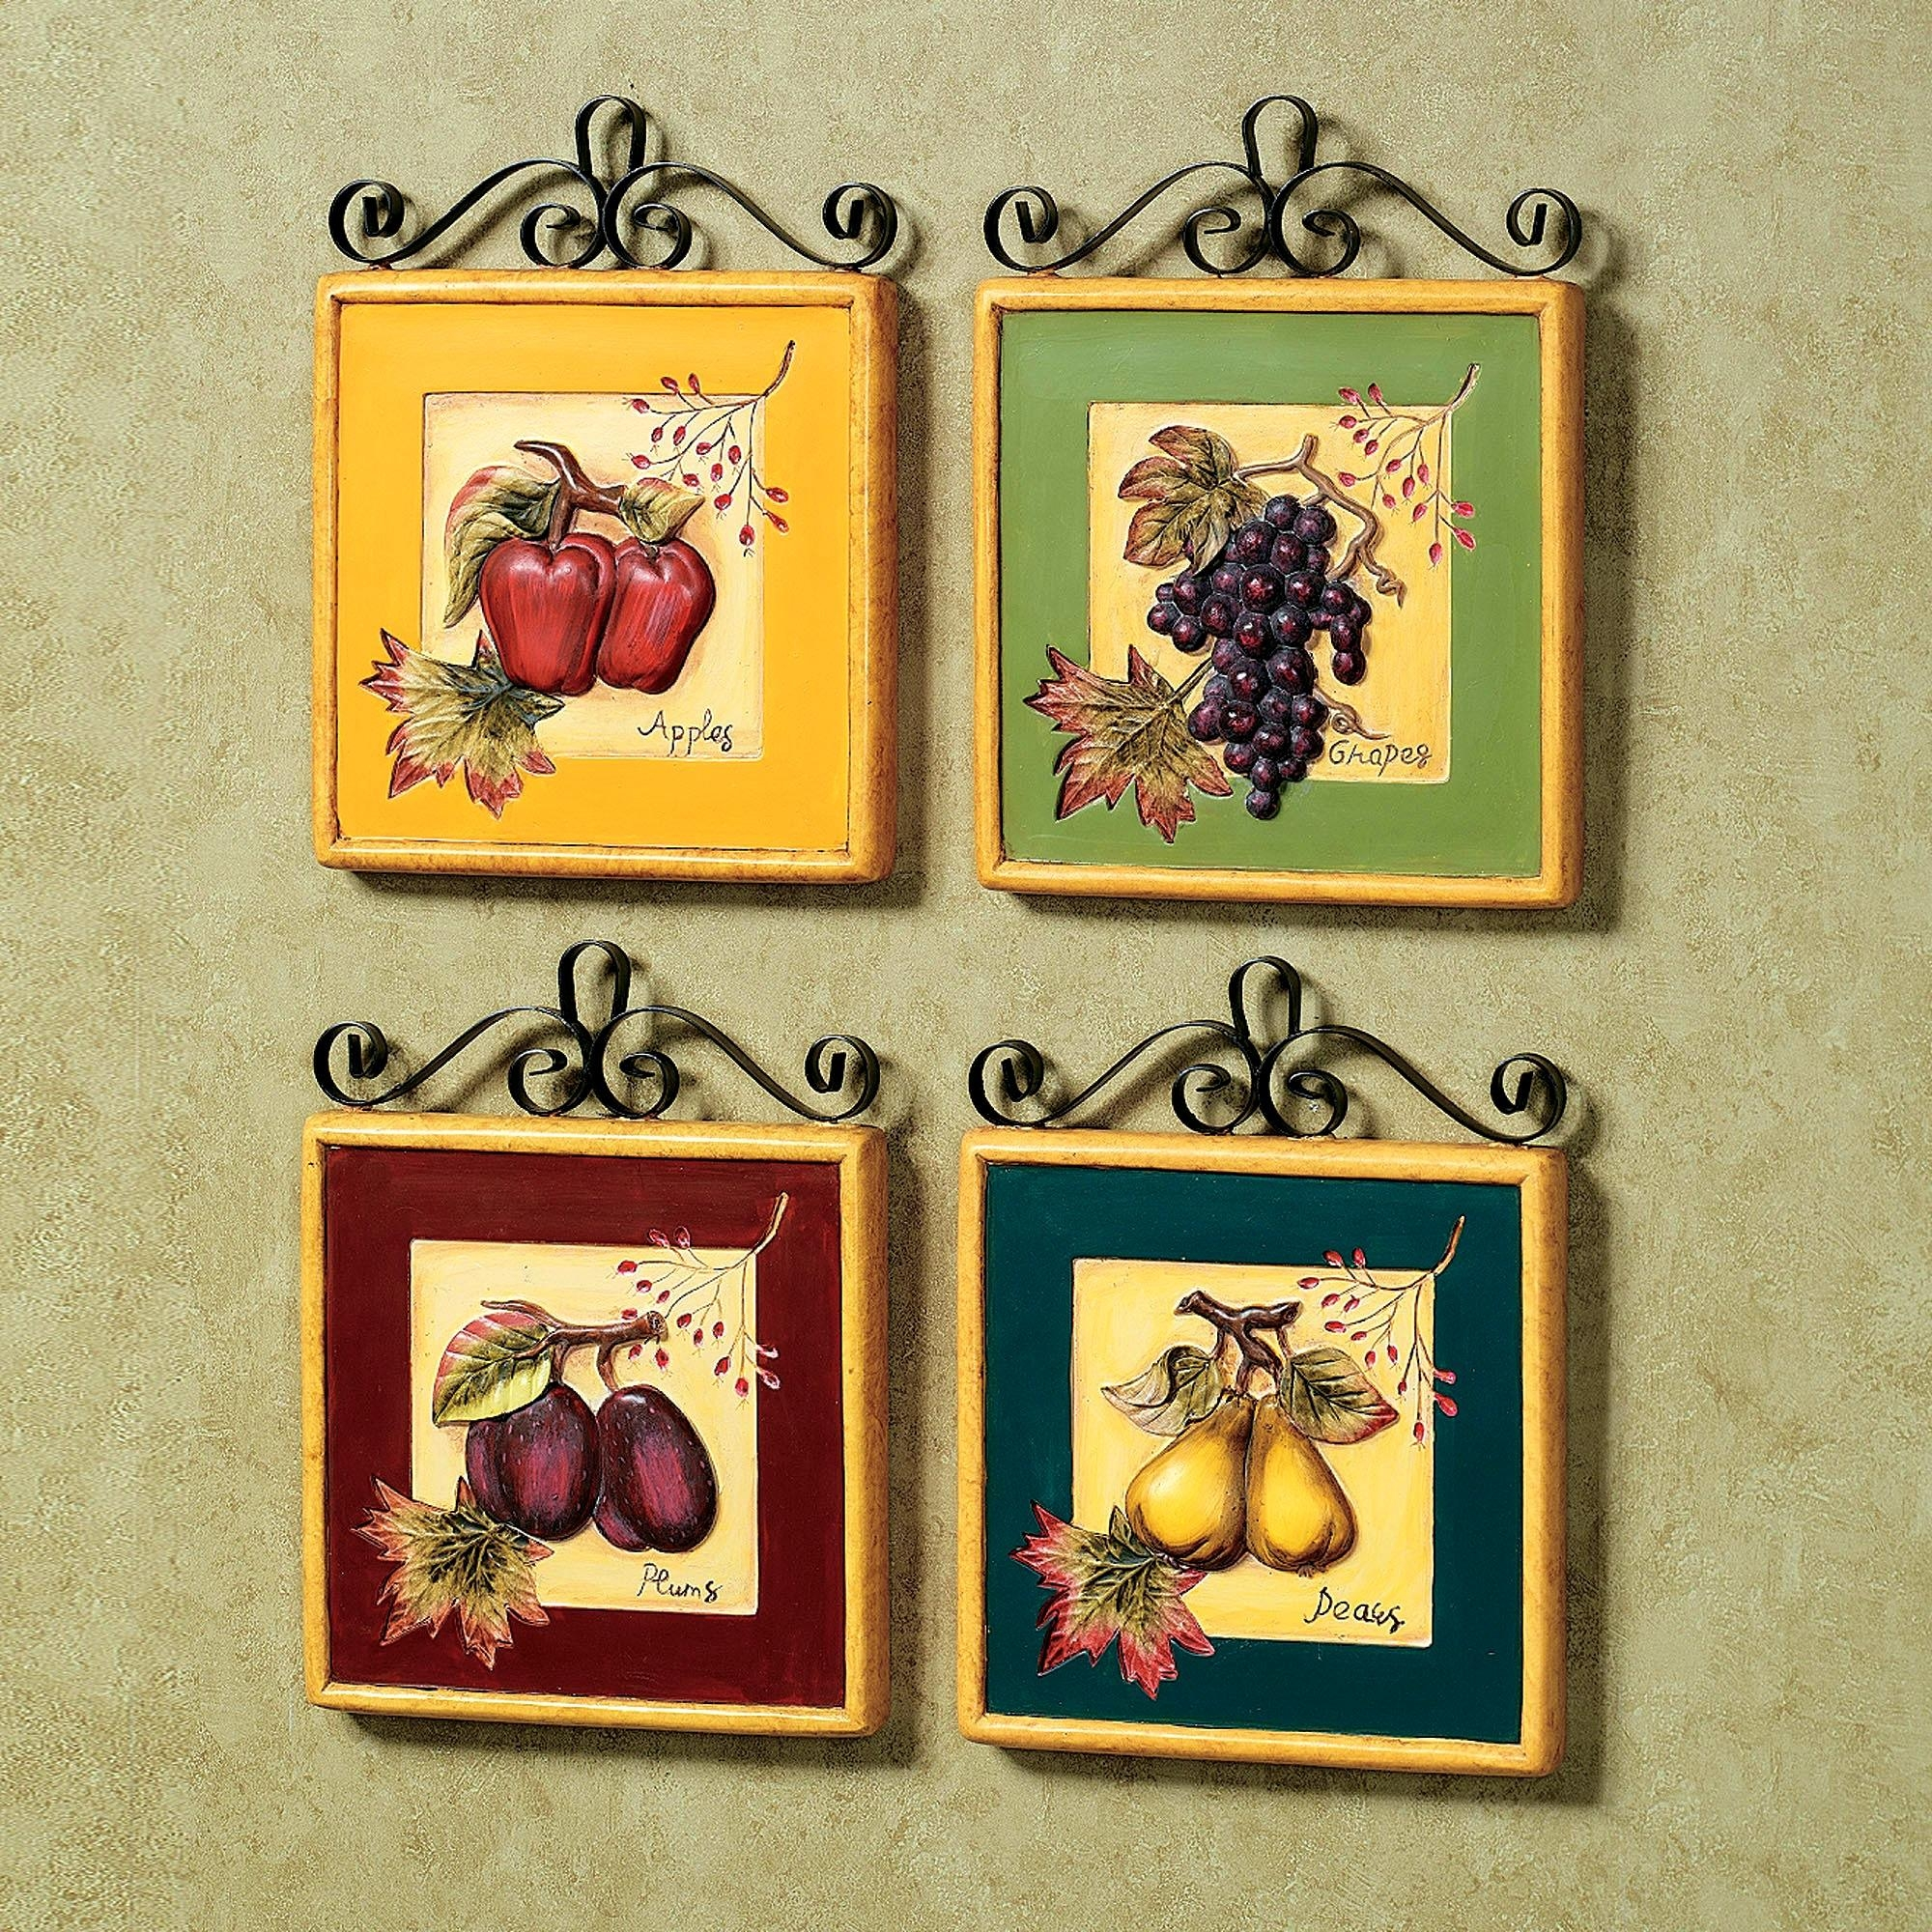 italian chef kitchen wall decor] 100 images italian bistro